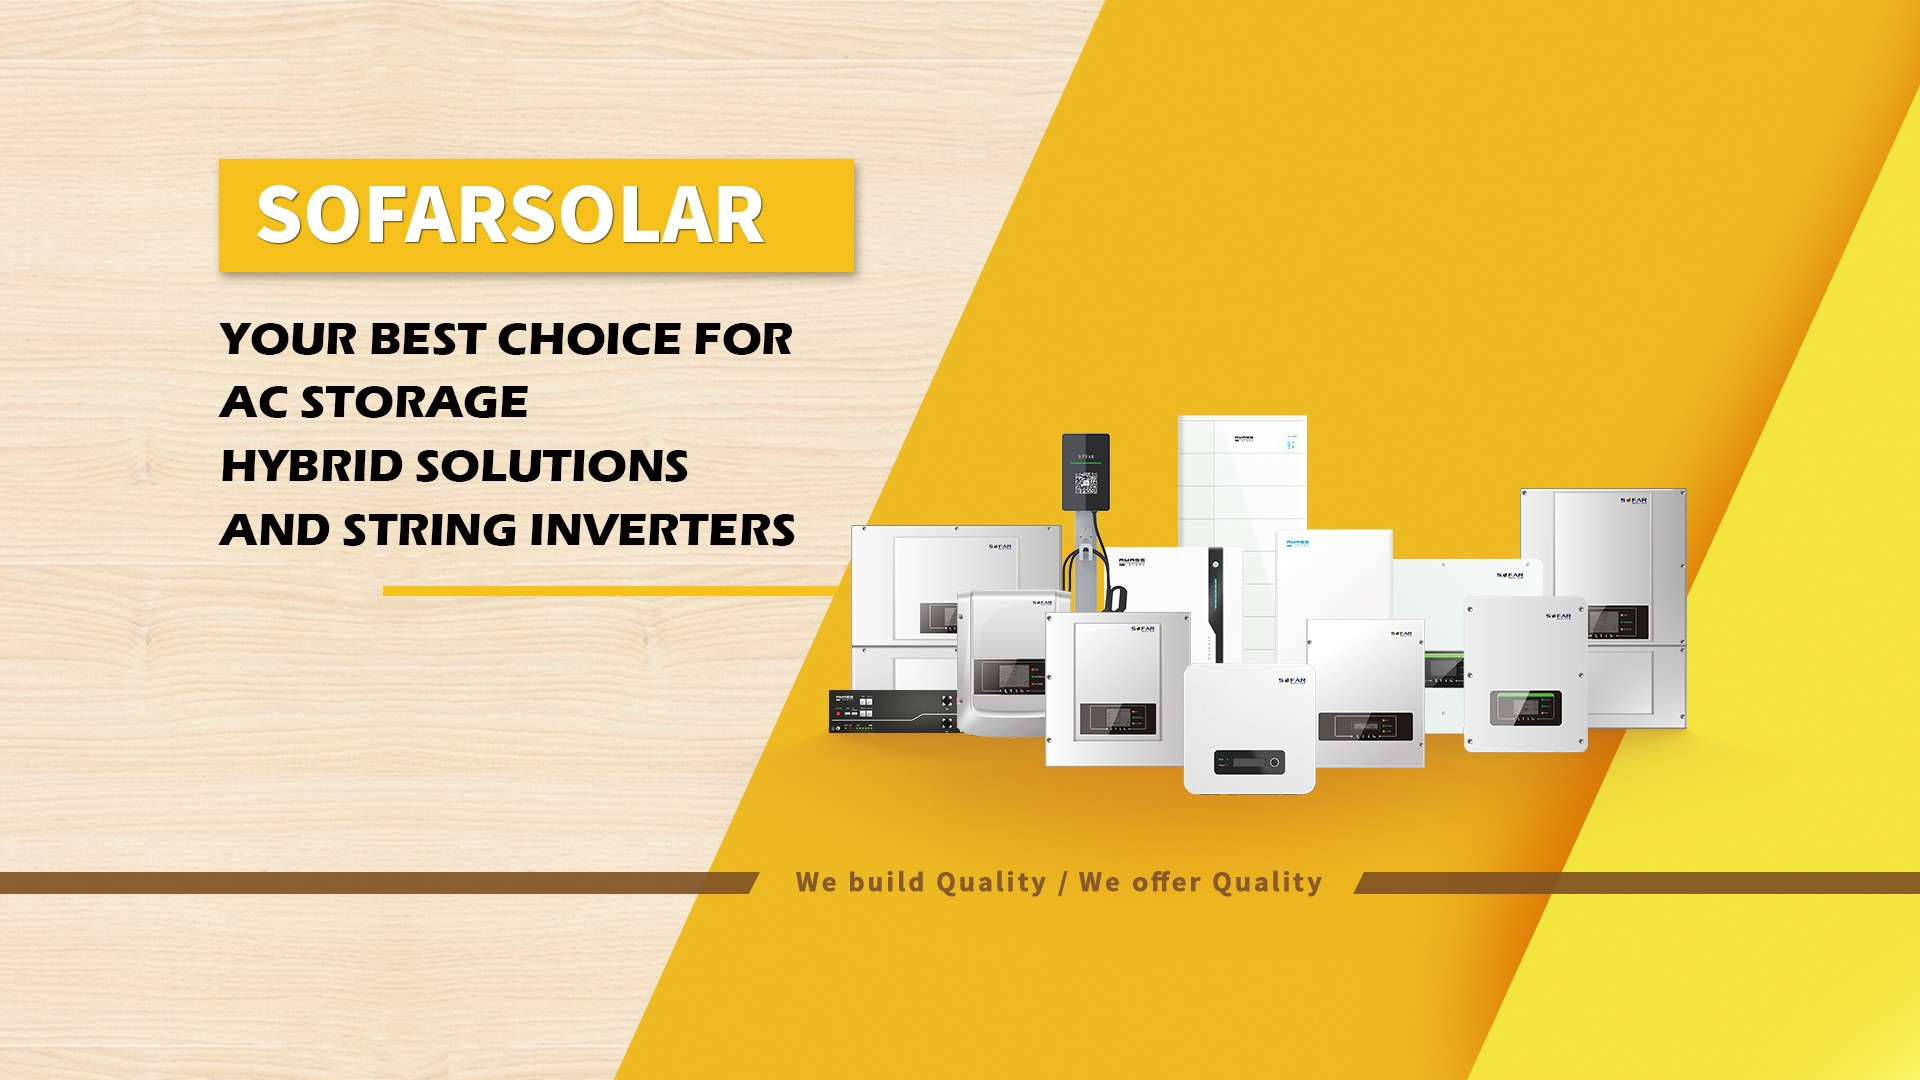 How does SOFARSOLAR increase brand recognition within the industry and outside of China?